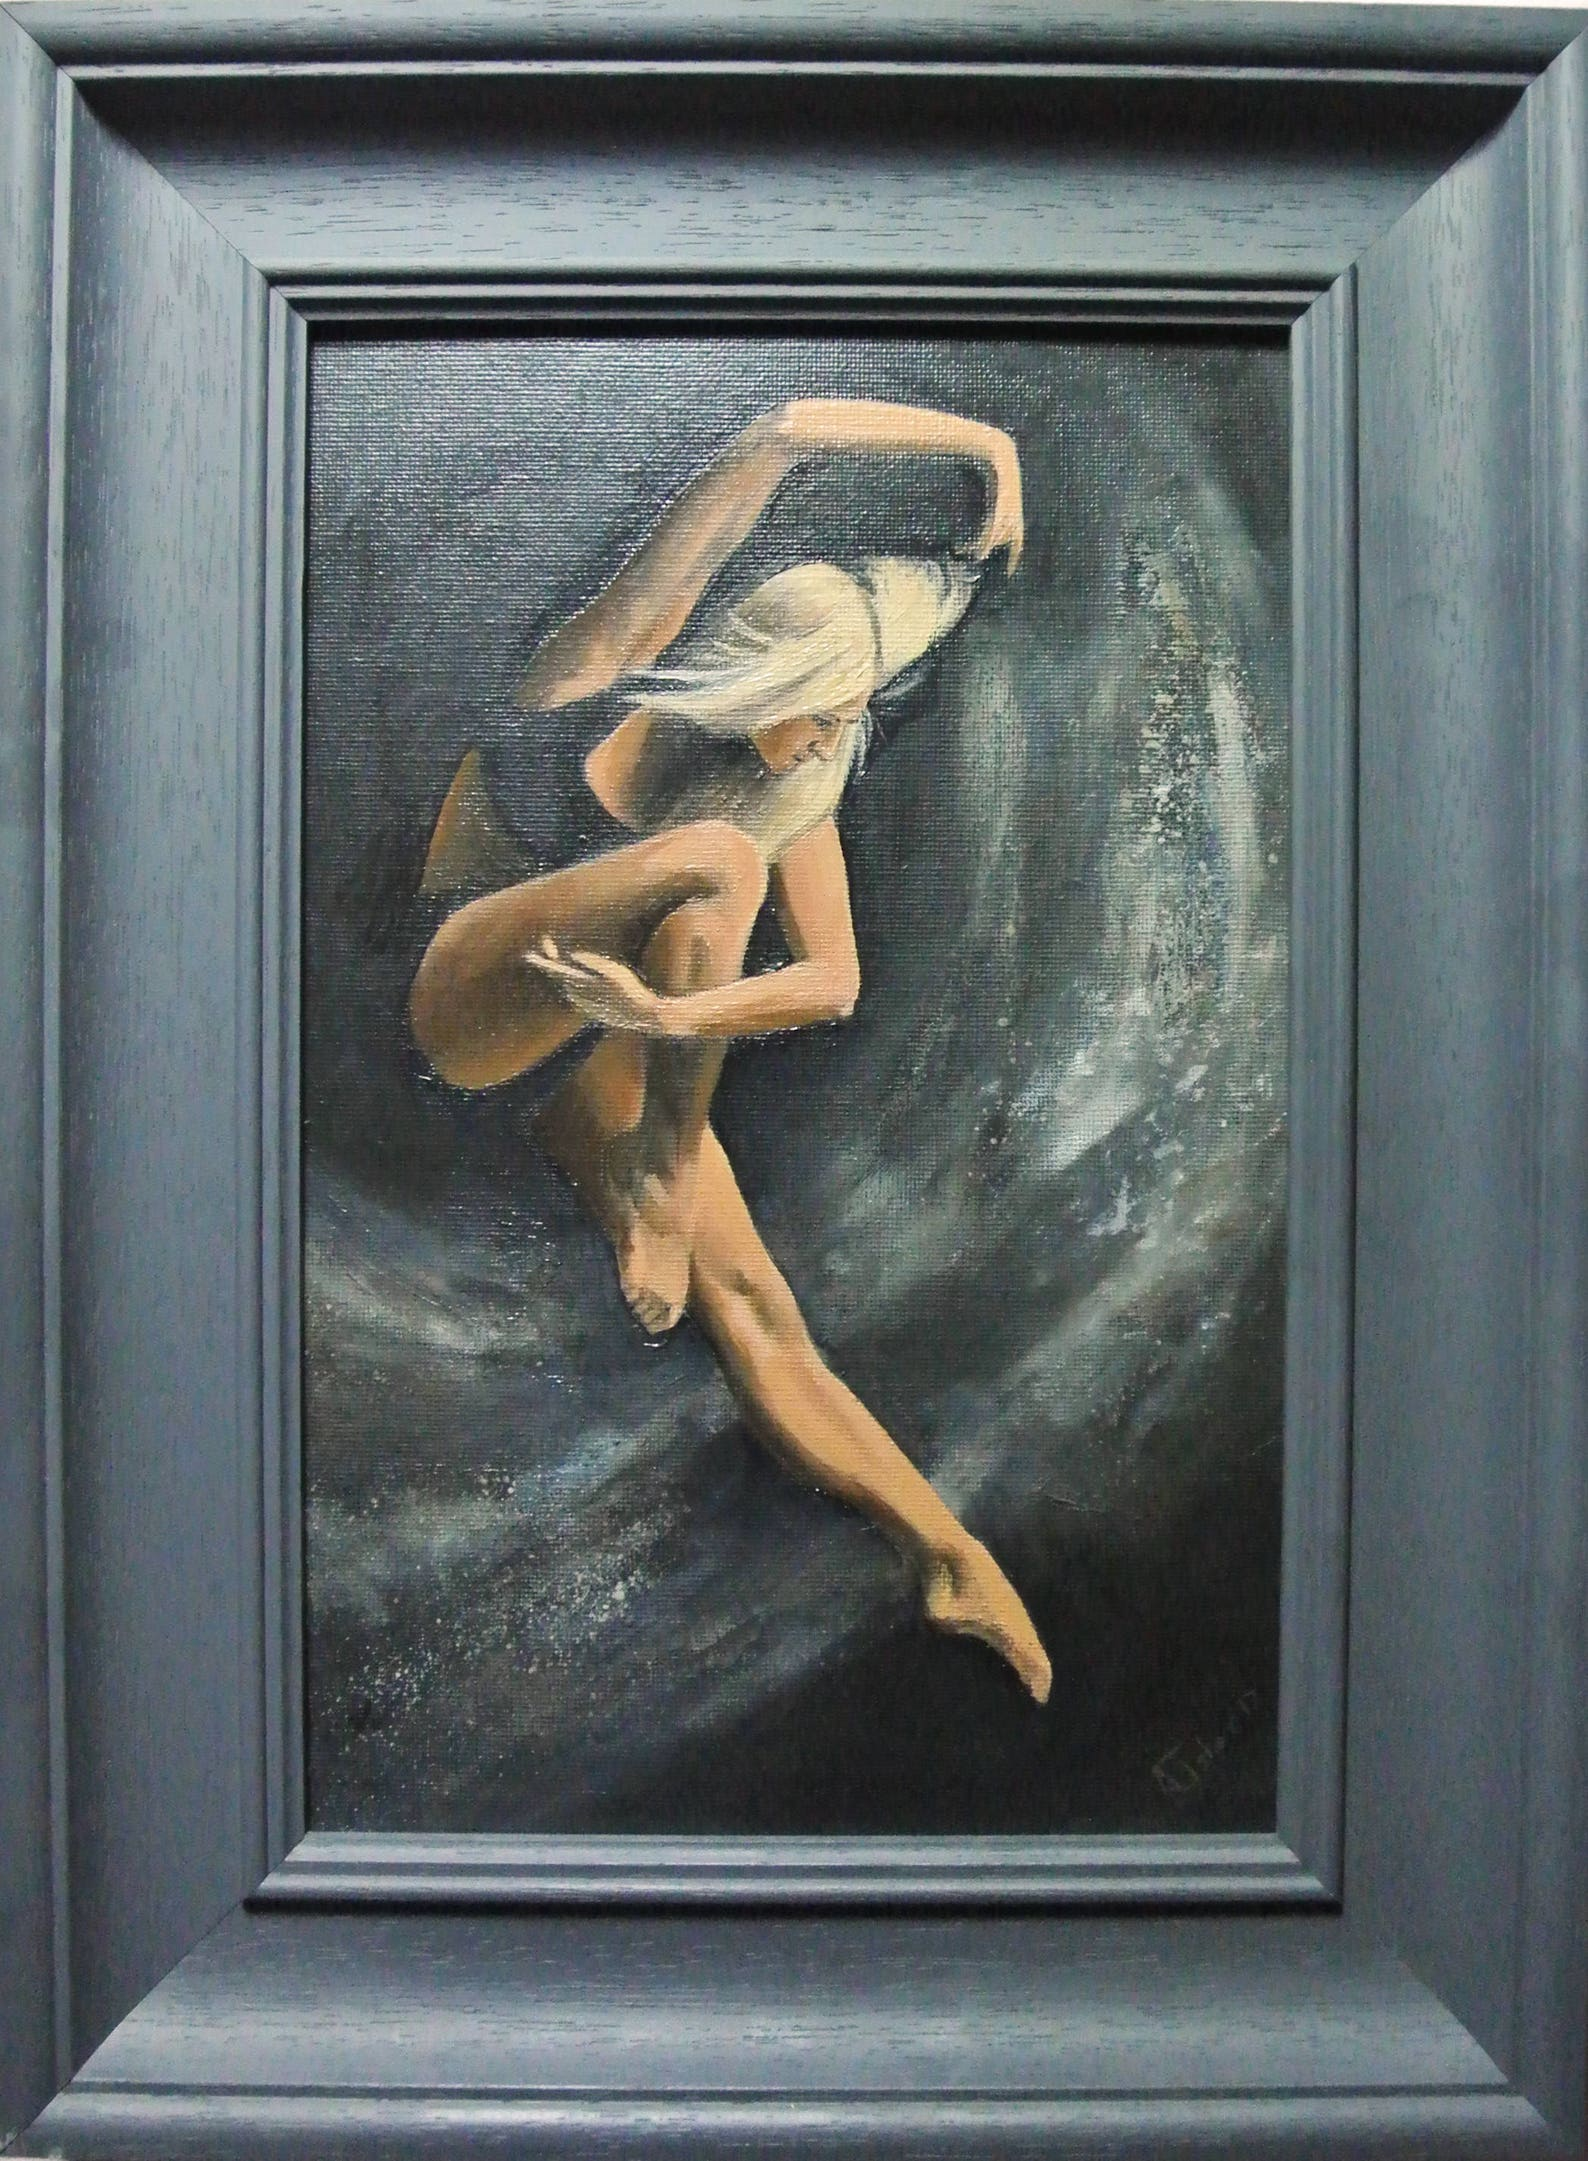 ballet study, ballerina, dance, framed and ready to hang (2016) oil original by uk artist